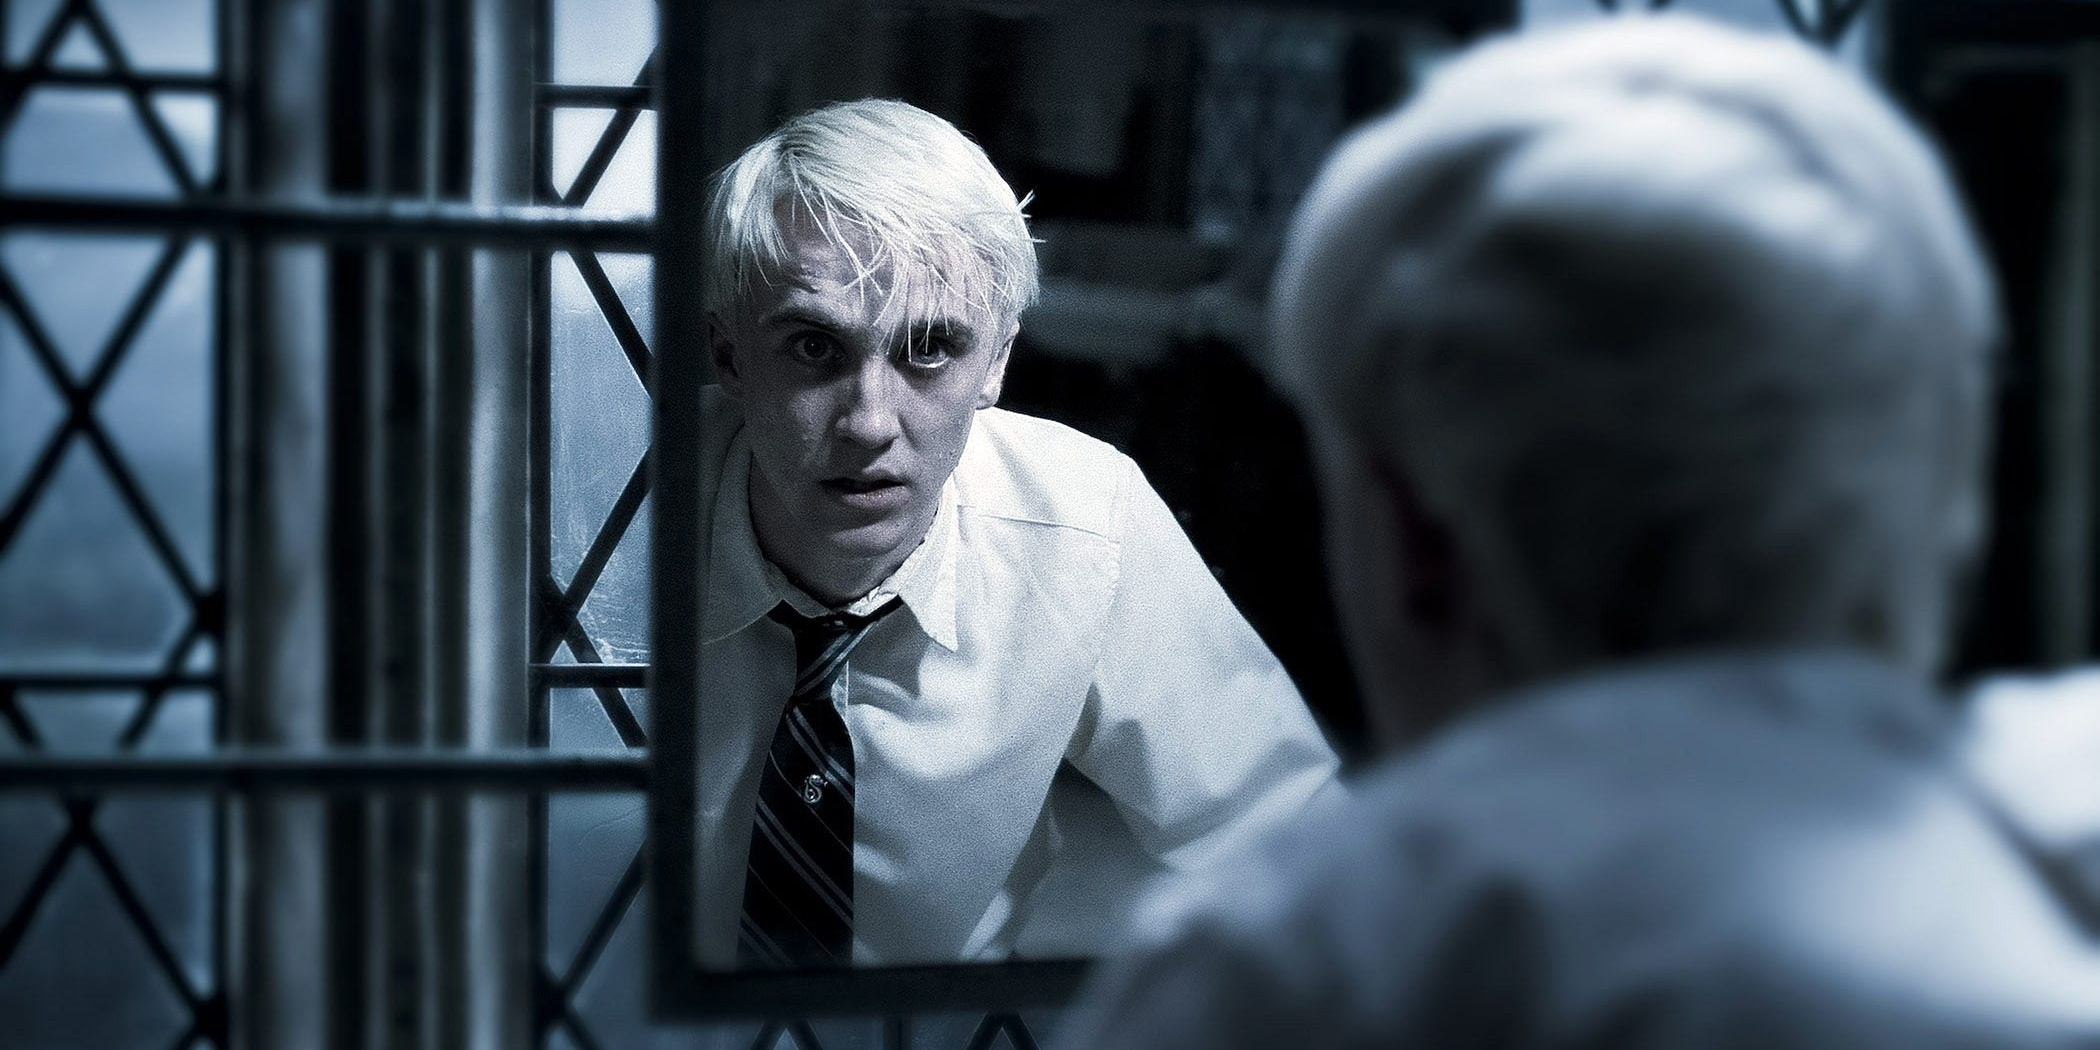 8. Harry Potter Vs. Draco Malfoy -Harry Potter And The Half-Blood Prince Cropped